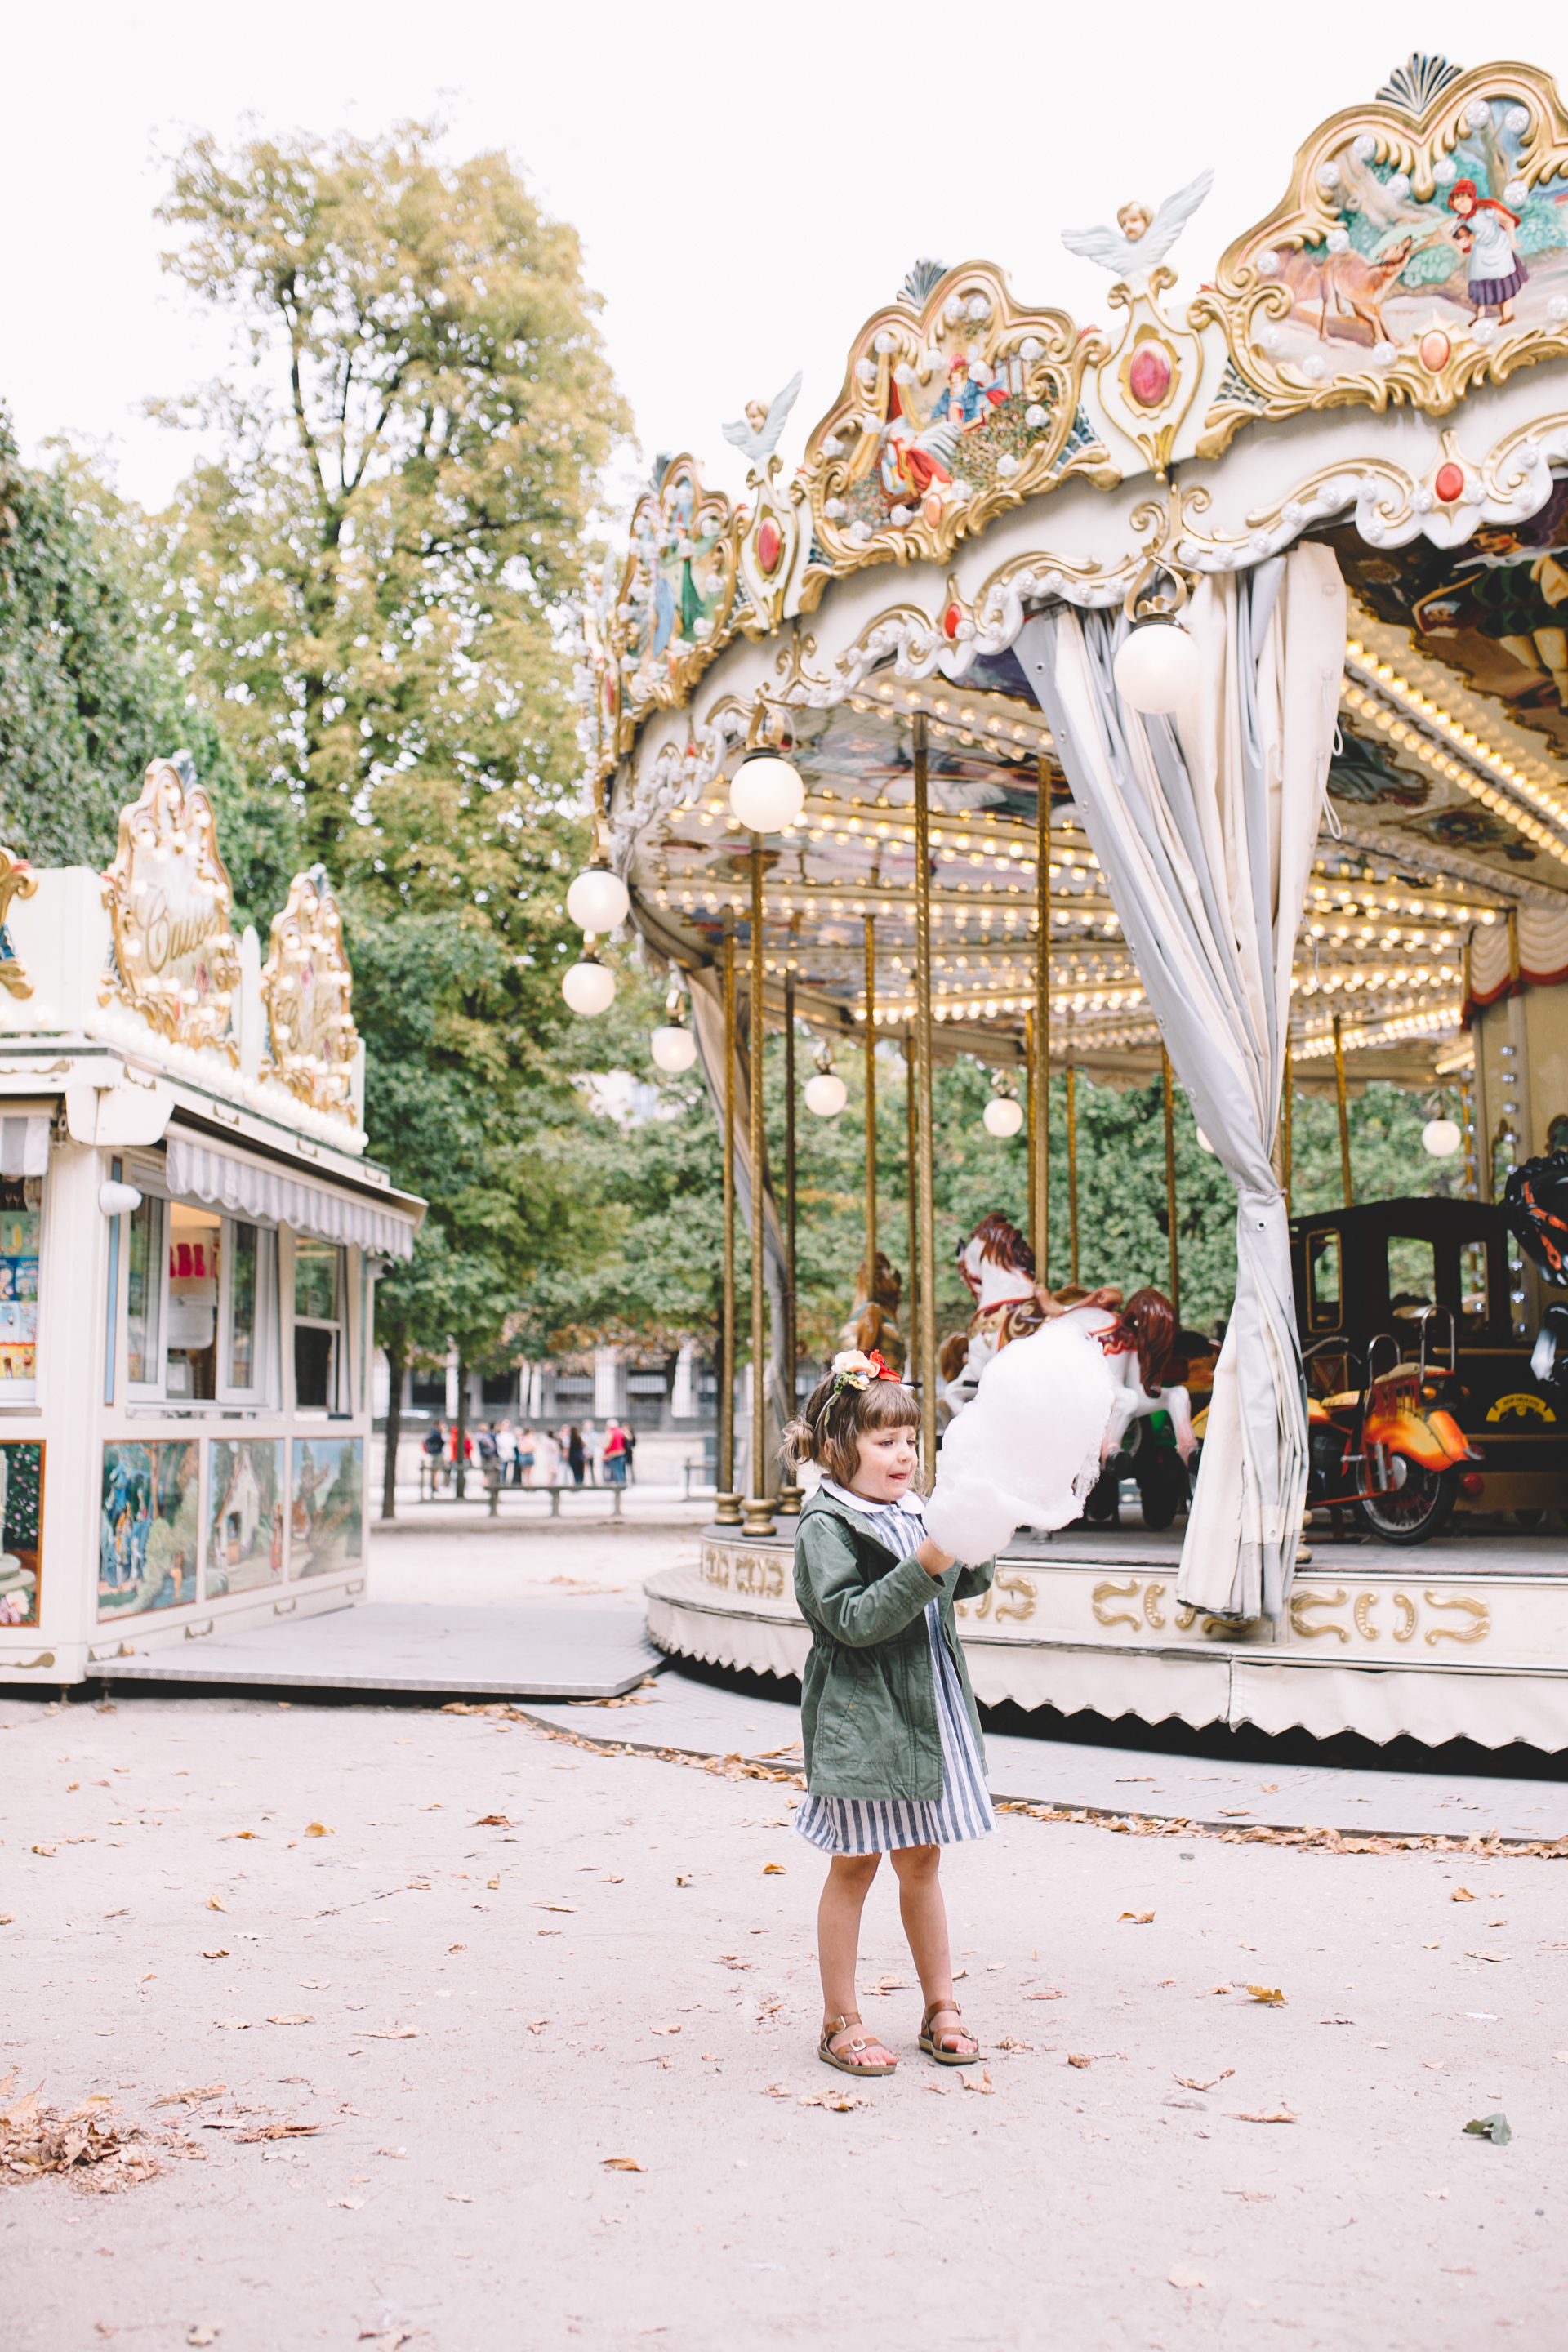 Jardin des Tuileries Paris France Carousel  (6 of 7).jpg